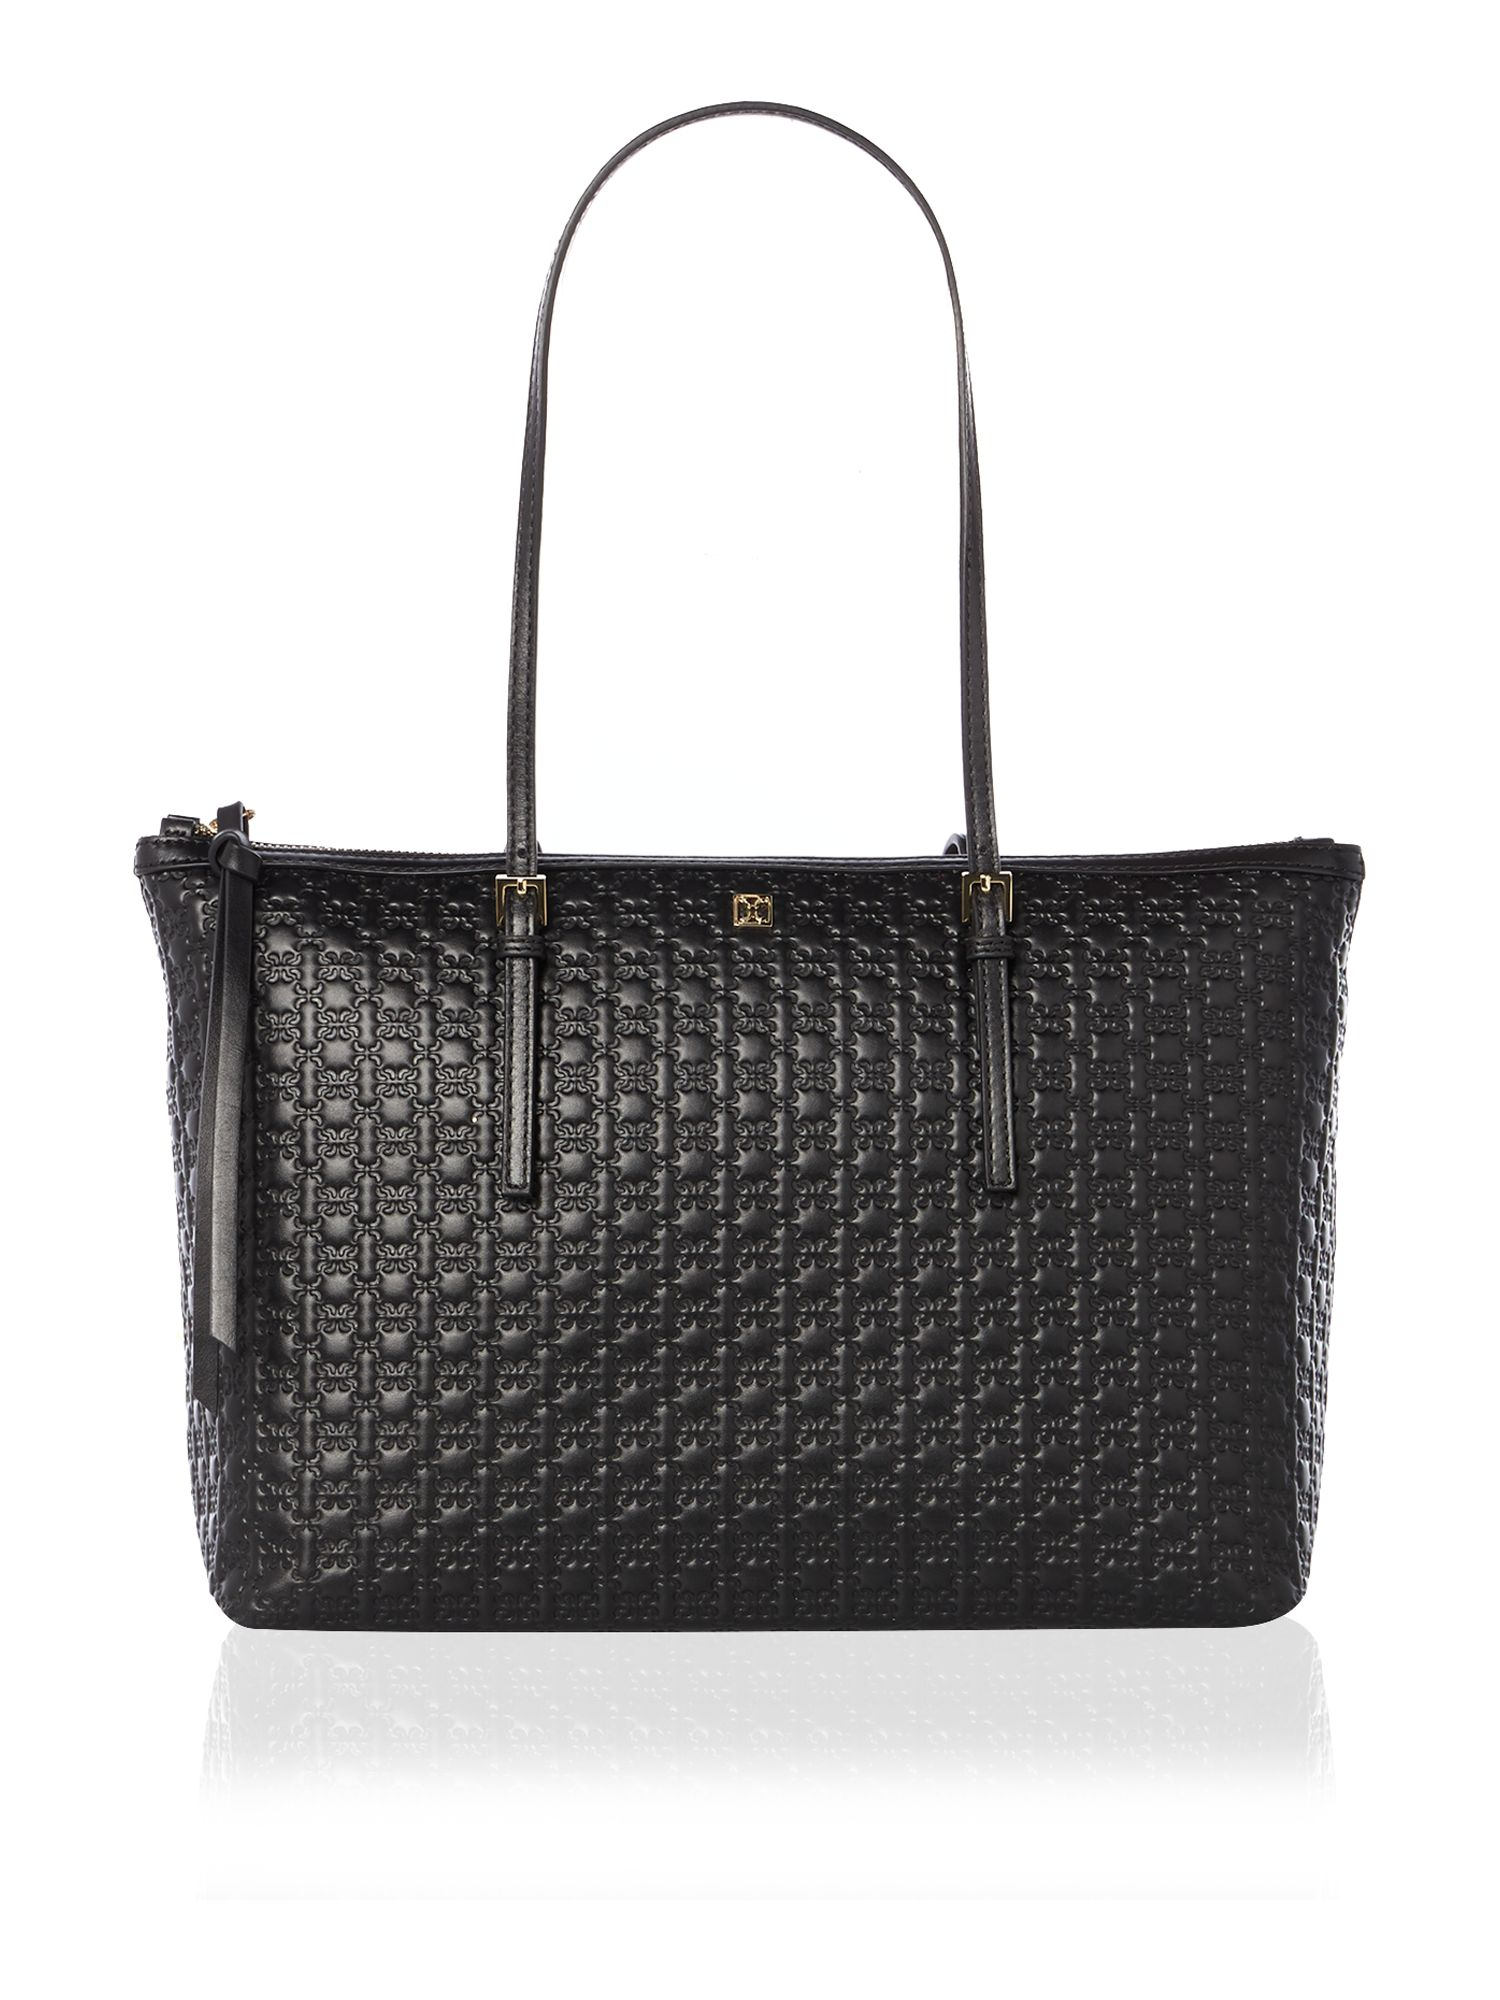 Black zip top tote bag